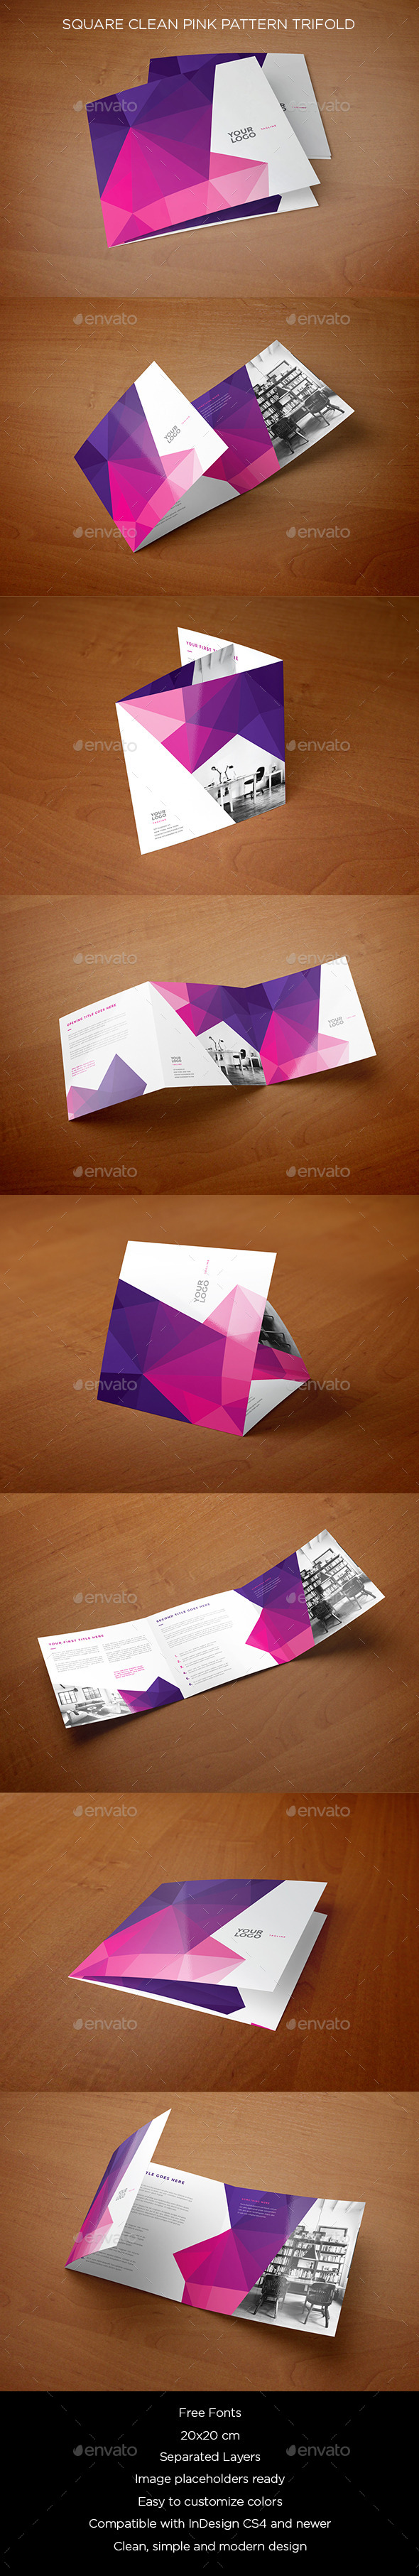 Square Clean Pink Pattern Trifold - Brochures Print Templates